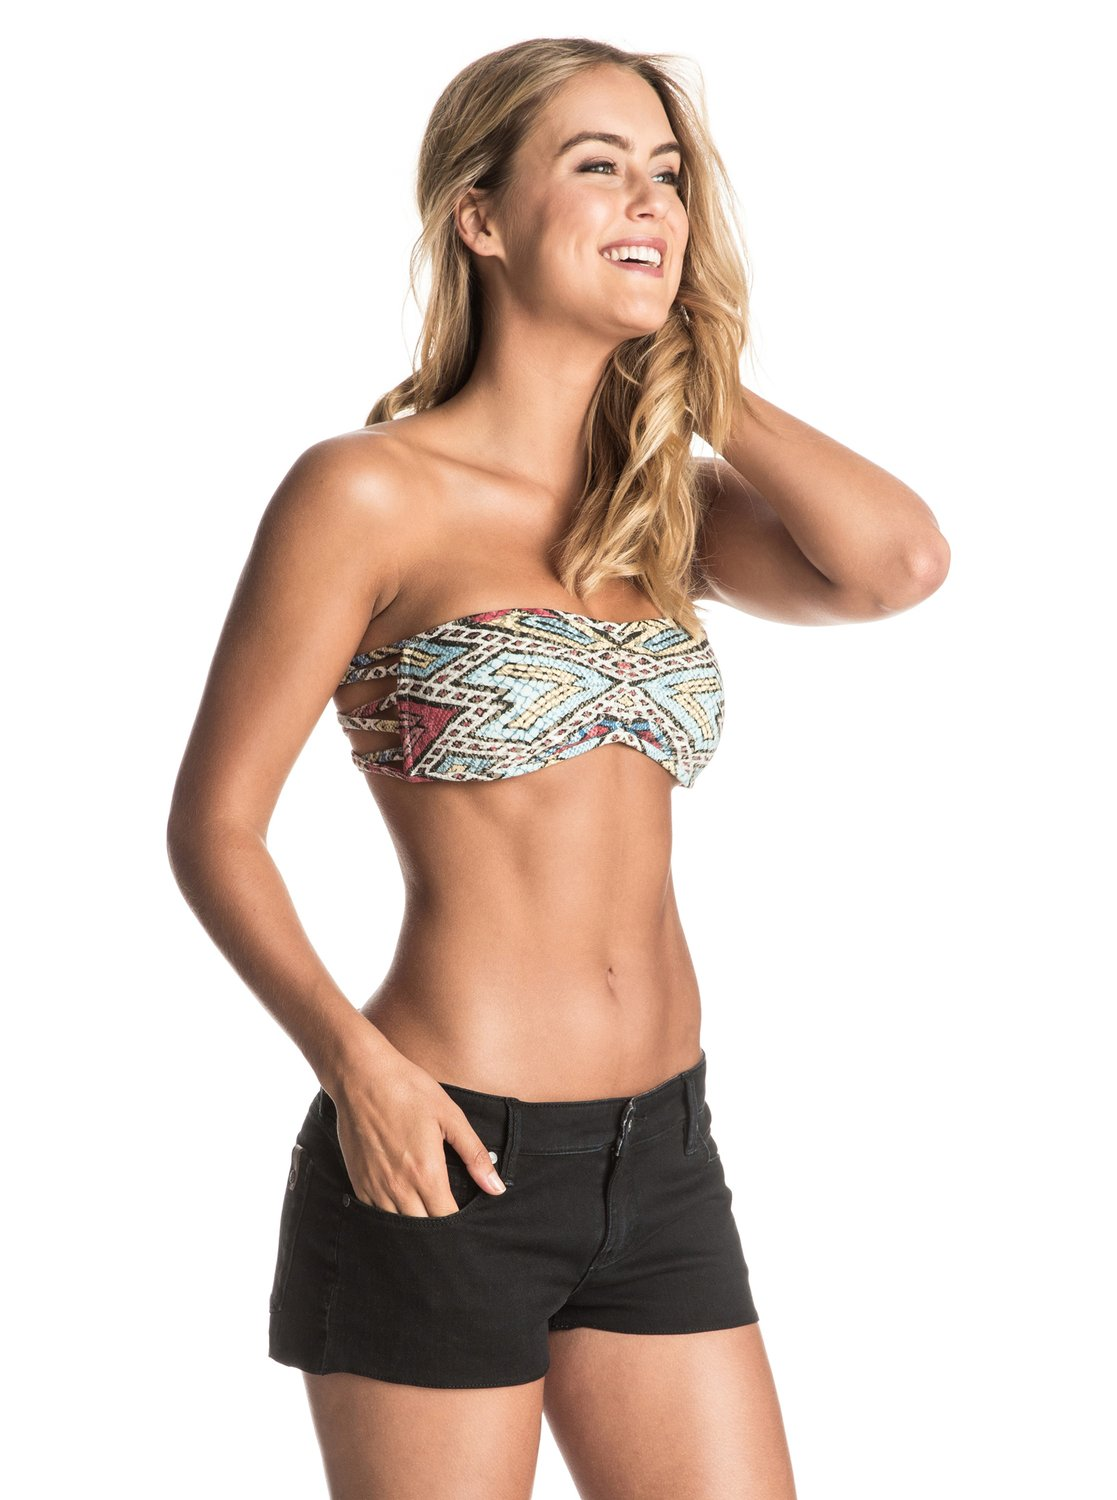 All I Want - Bandeau Top